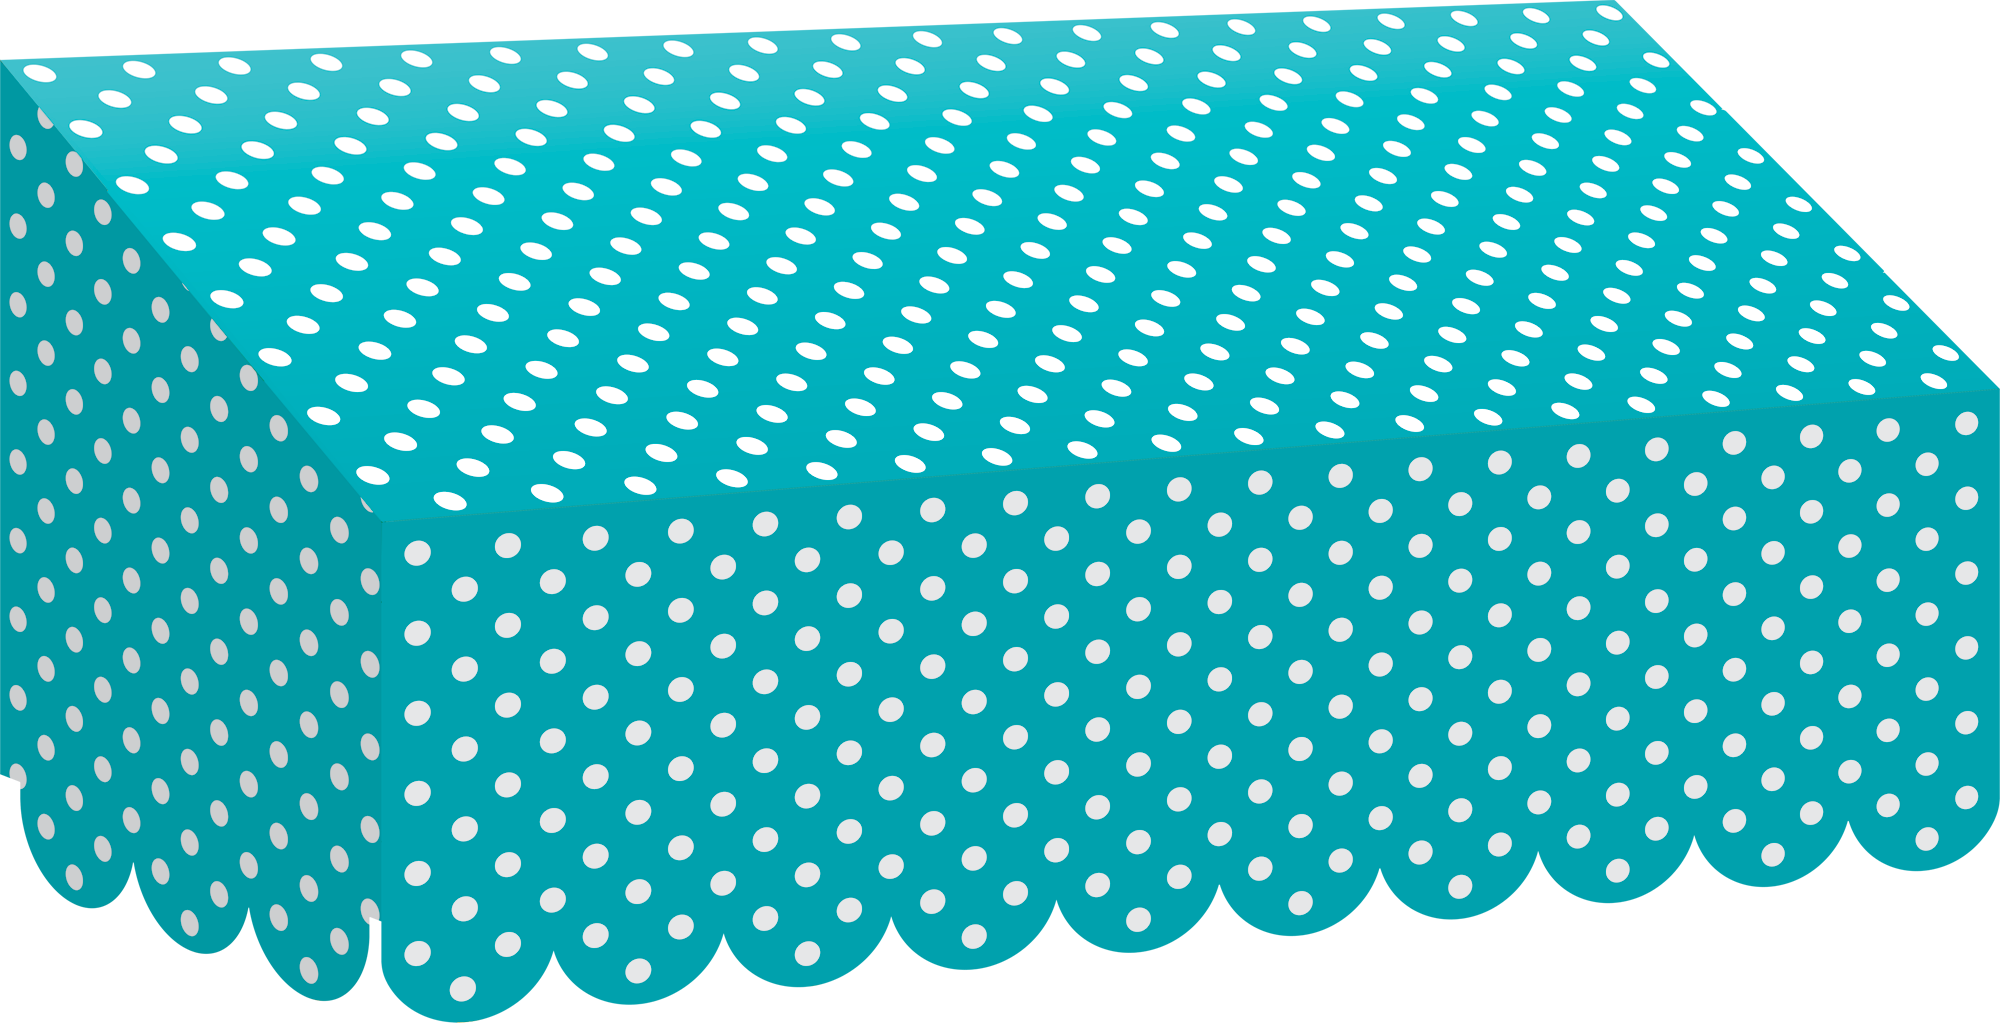 Teal Polka Dots Awning Tcr77163 Teacher Created Resources